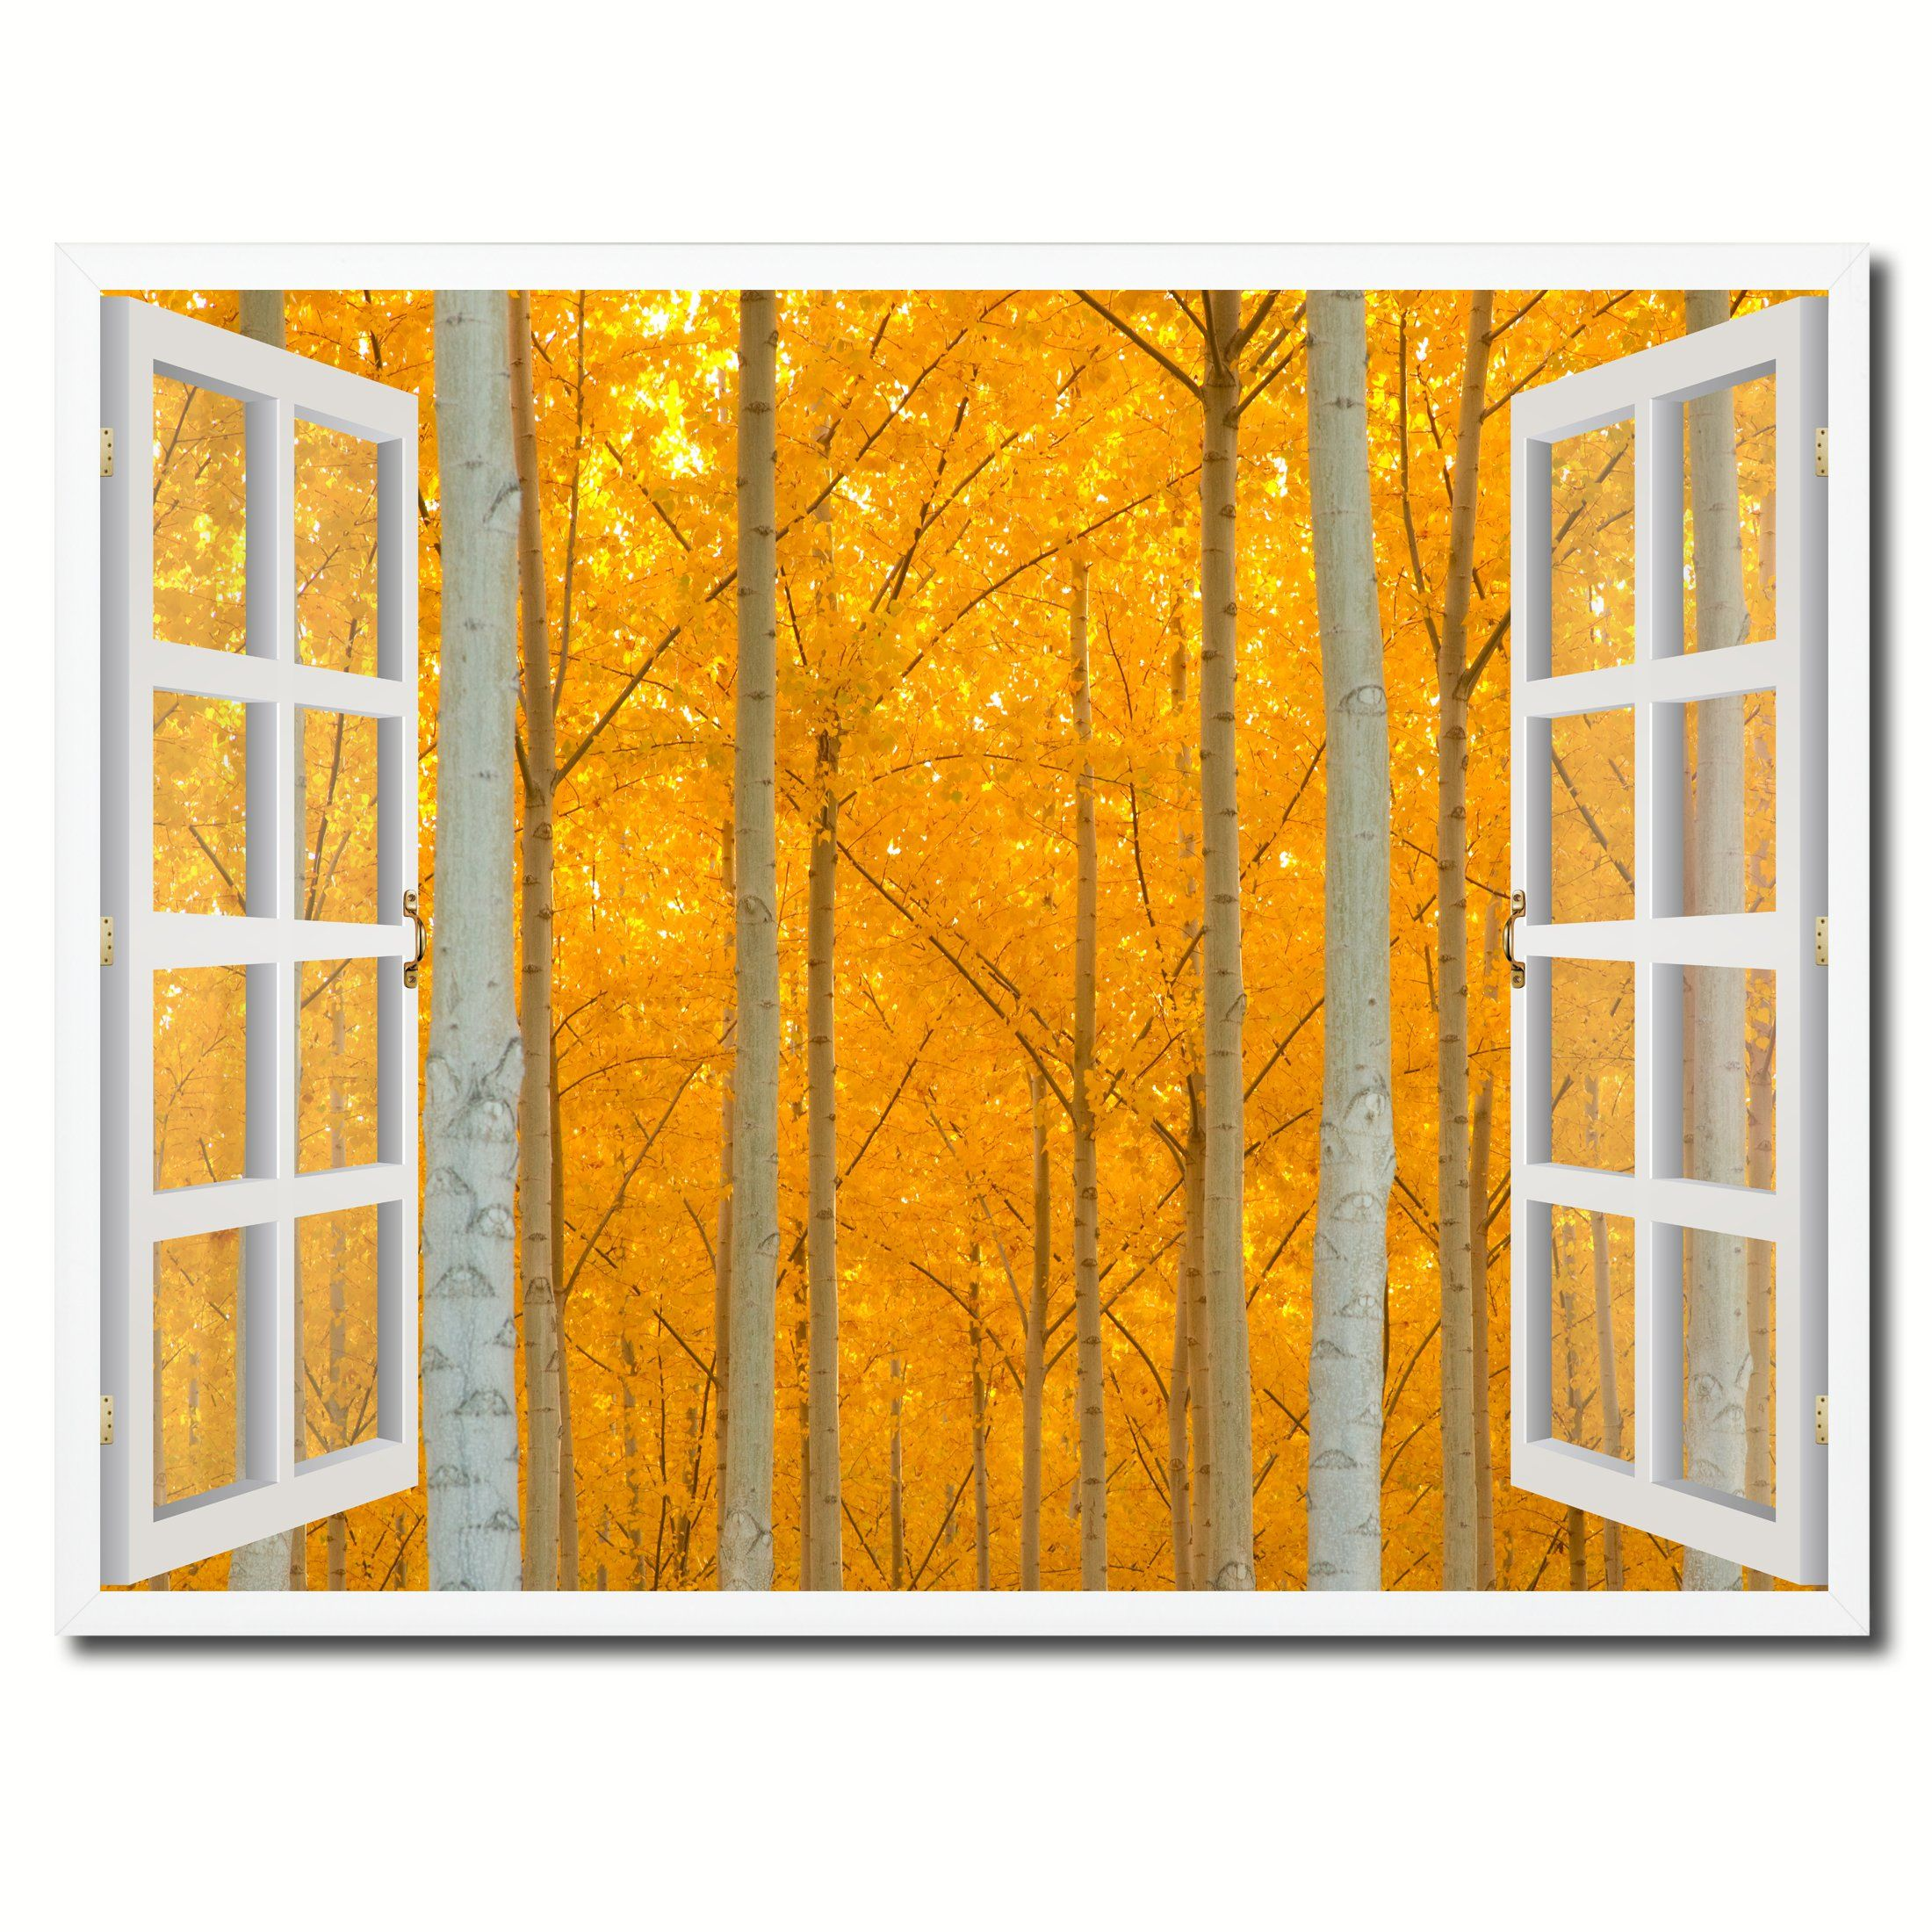 Autumn Yellow Trees Picture French Window Framed Canvas Print Home ...